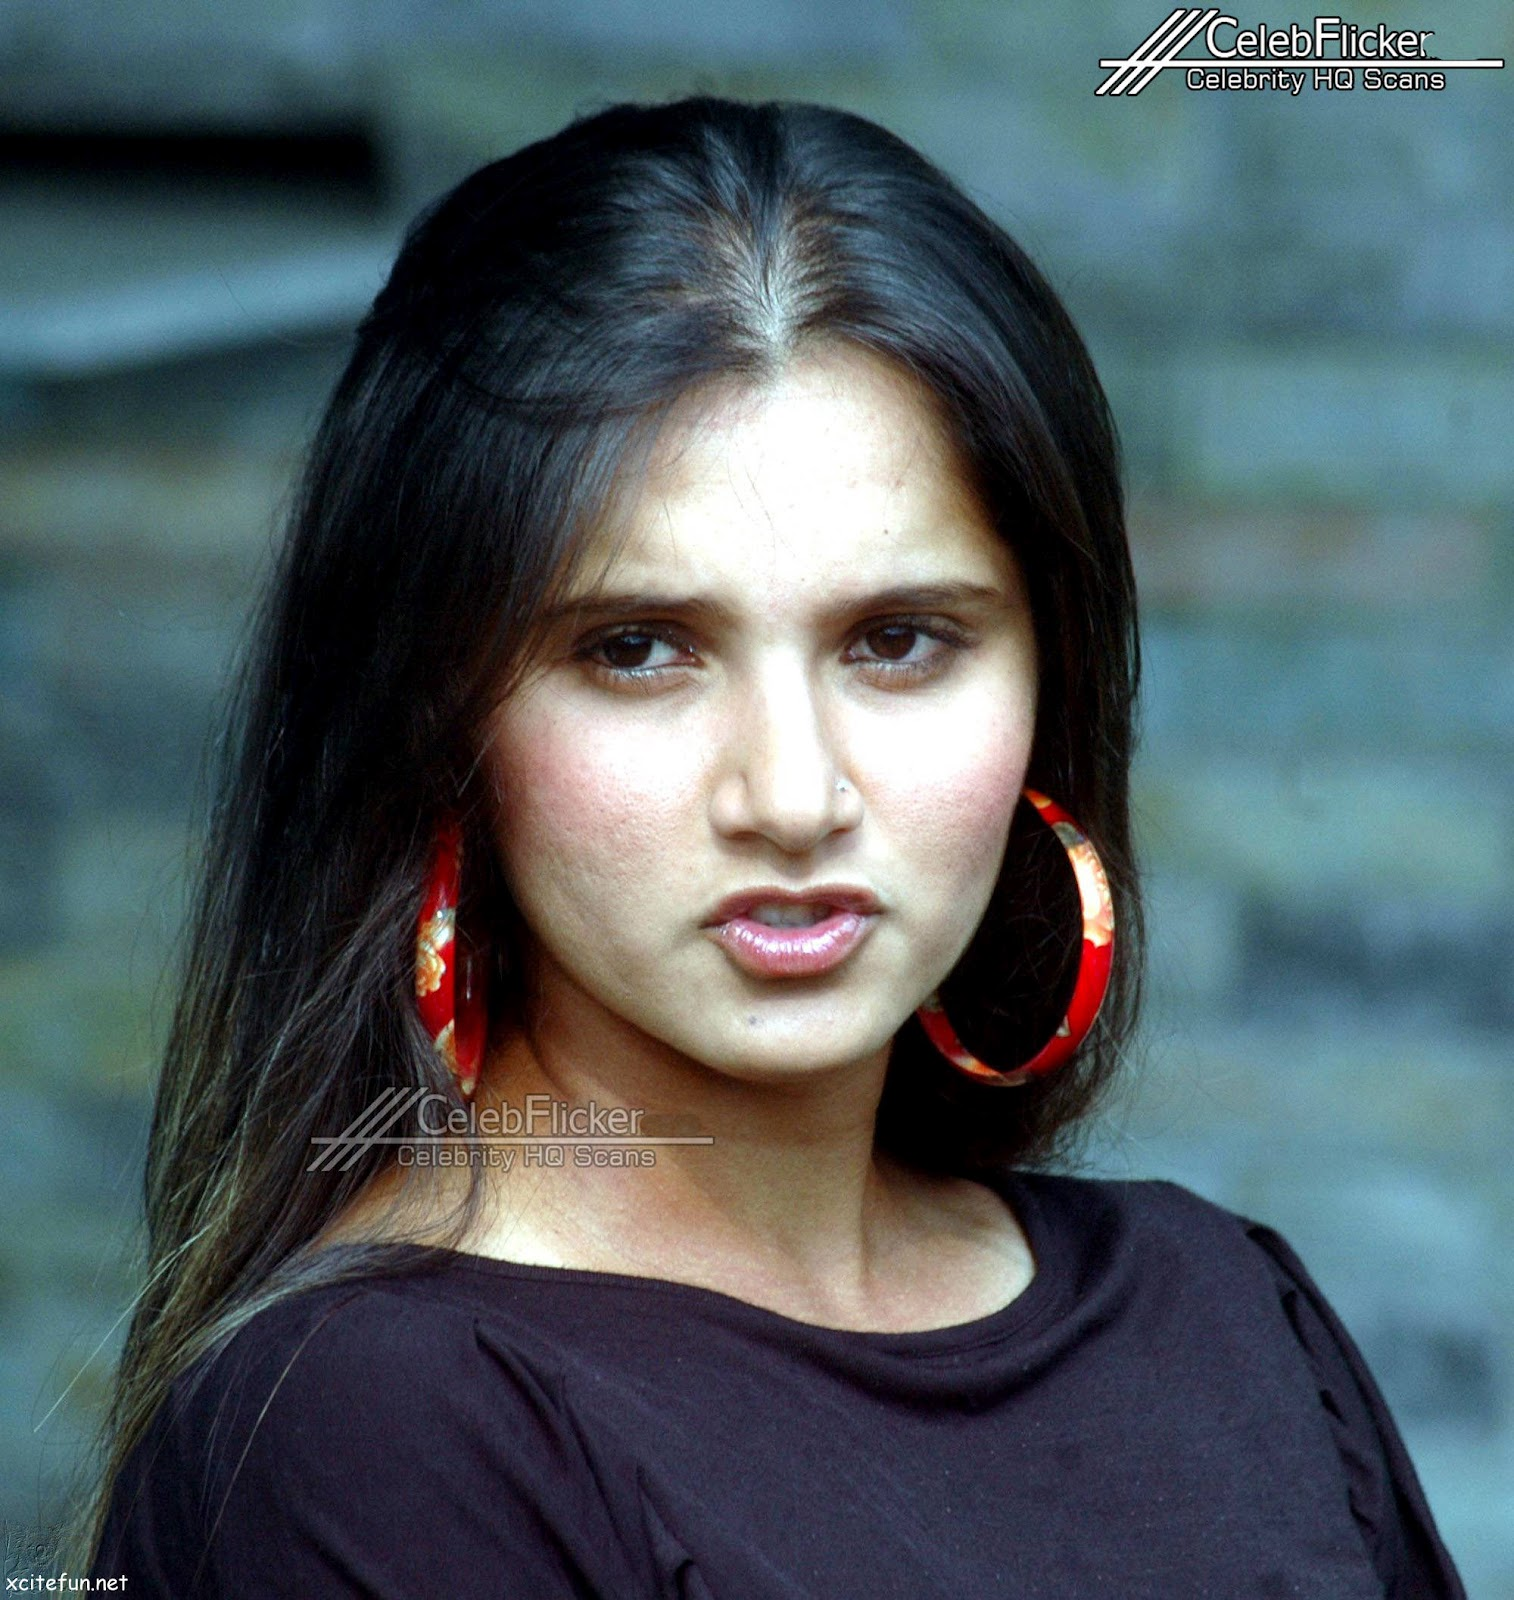 Celebrity Wall Sania Mirza Hot Wallpapers-3634